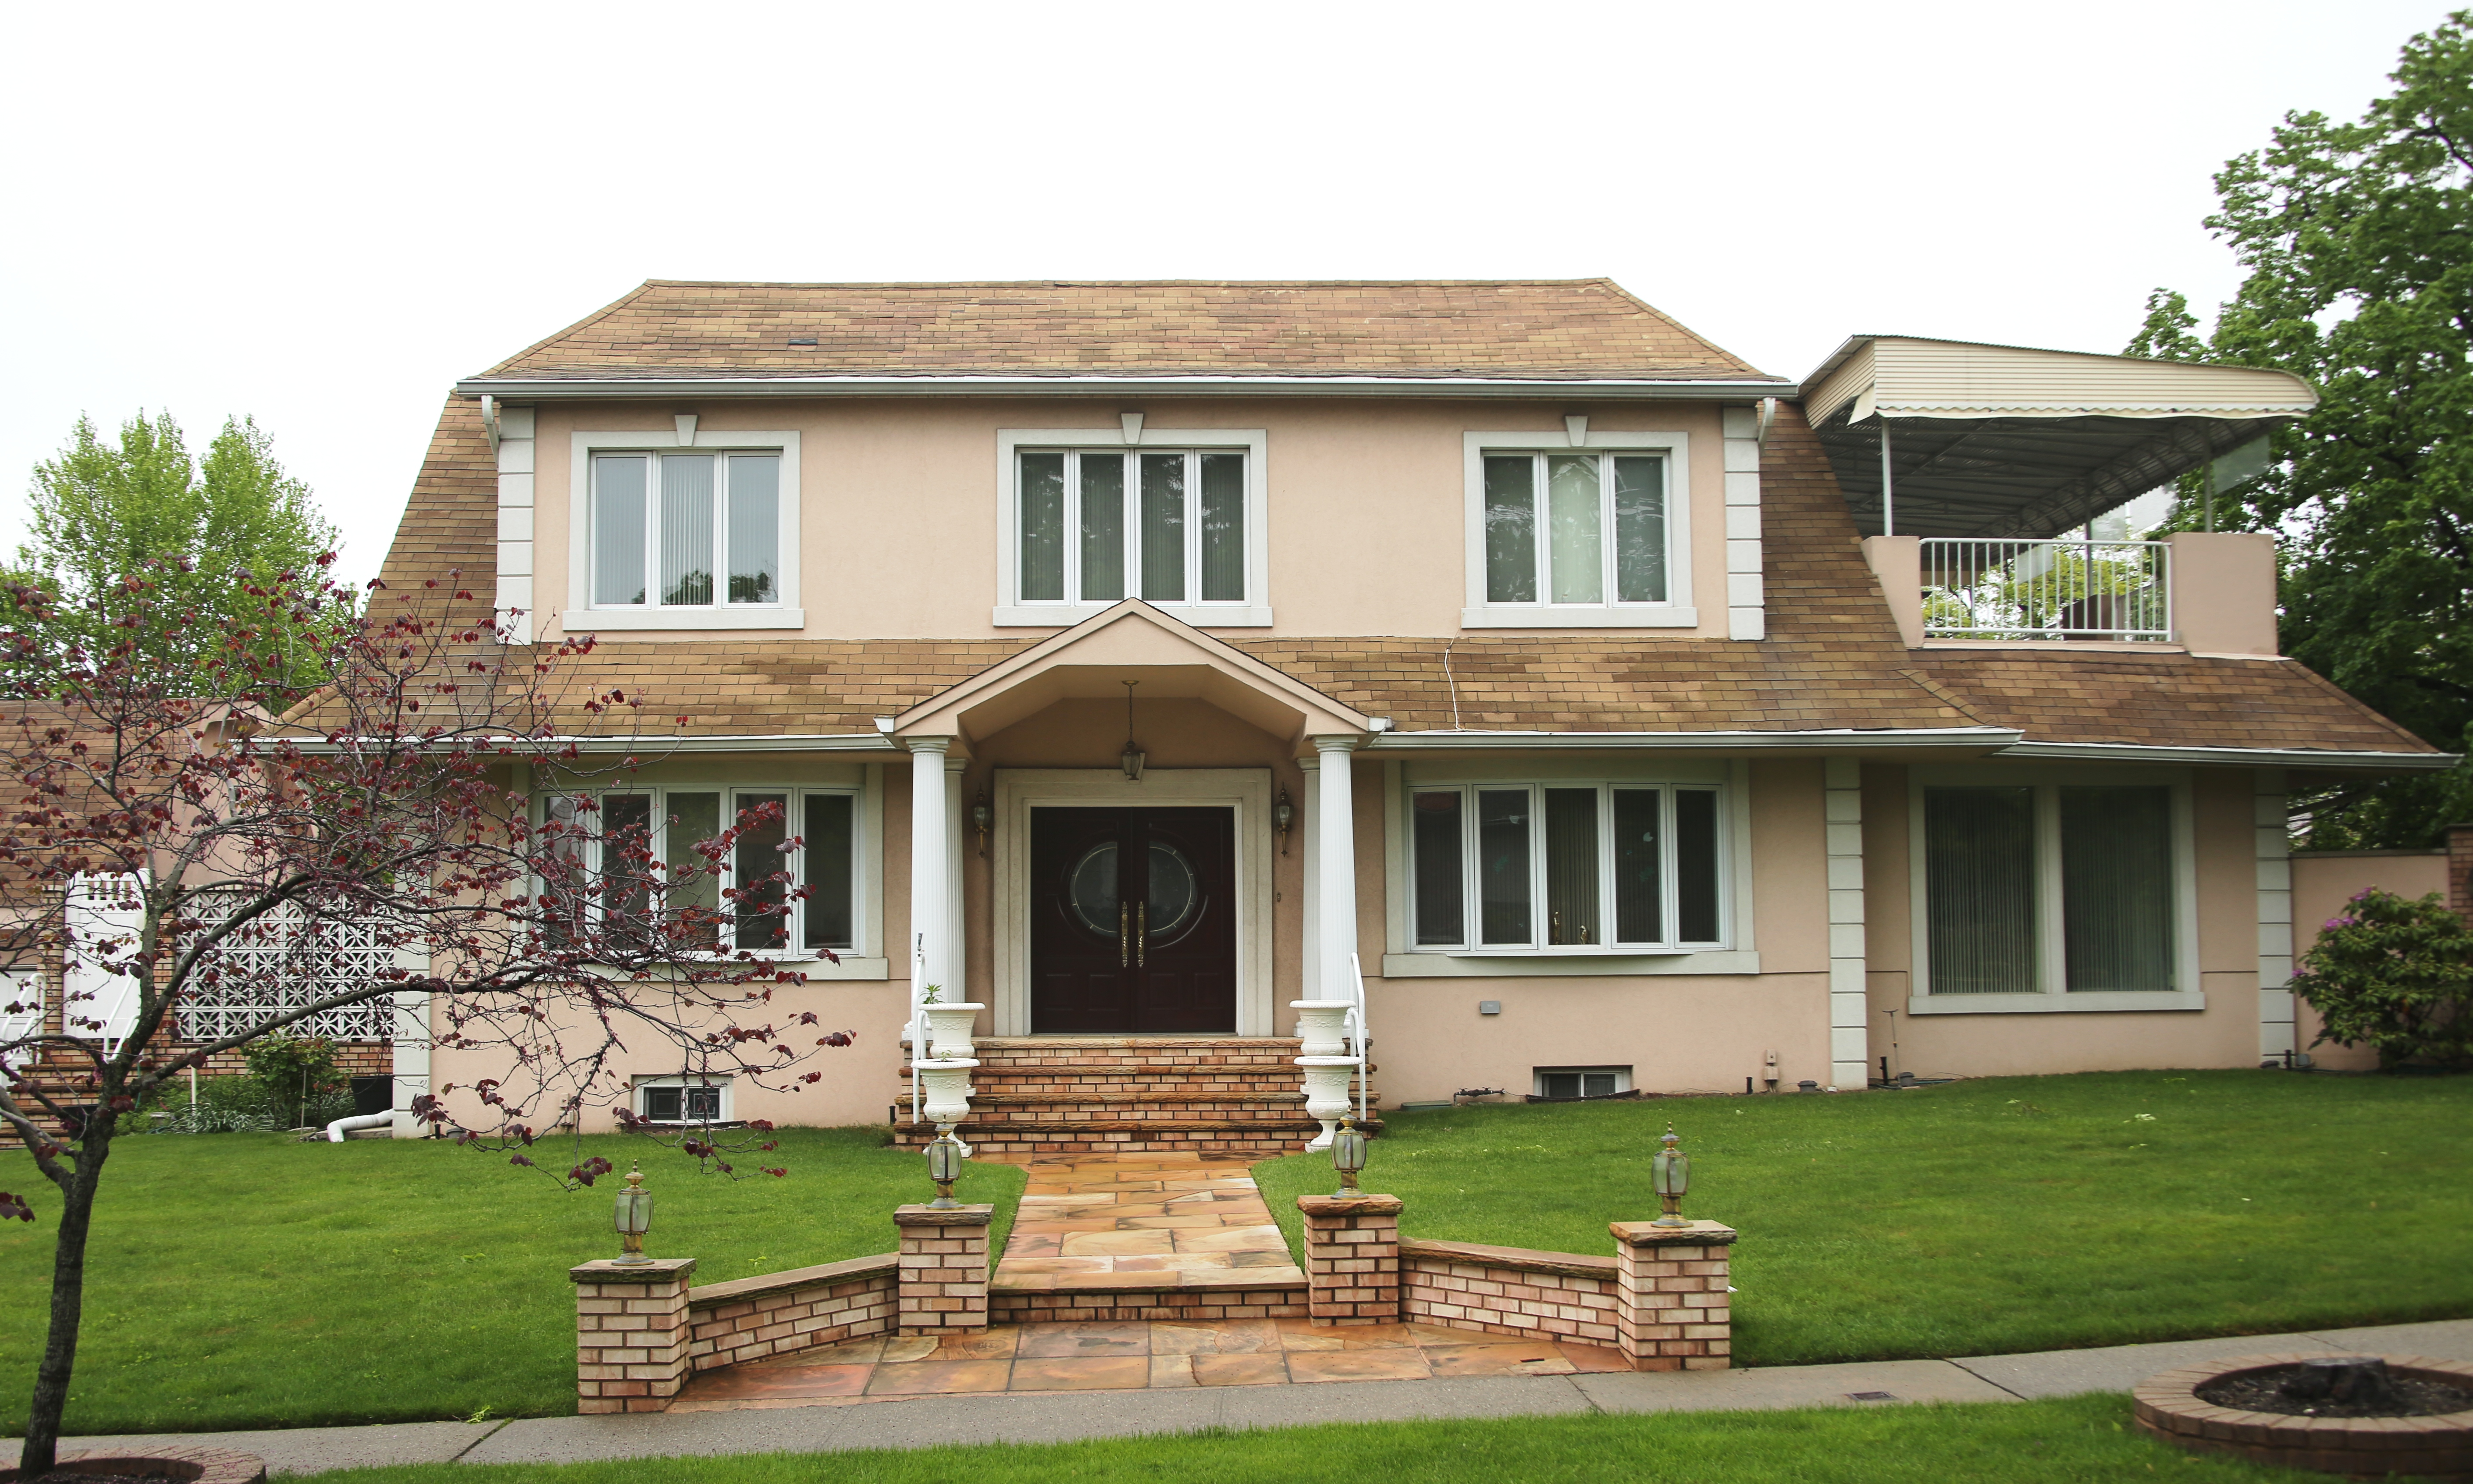 Beautiful Colonial Home For Sale In Malba! Features 5 Bedrooms, 3.5 Baths, Flr, Fdr, Eik, Family Room W/Bar And Full Finished Basement W/Laundry Room. Granite And Hardwood Flooring Throughout, Covered Balcony And Ingss. Detached 2 Car Garage. Great Curb Appeal All On 56X120 Sq Ft Corner Lot. Easy Access To Expressway, Close To Shopping And In District 25. A Must See!